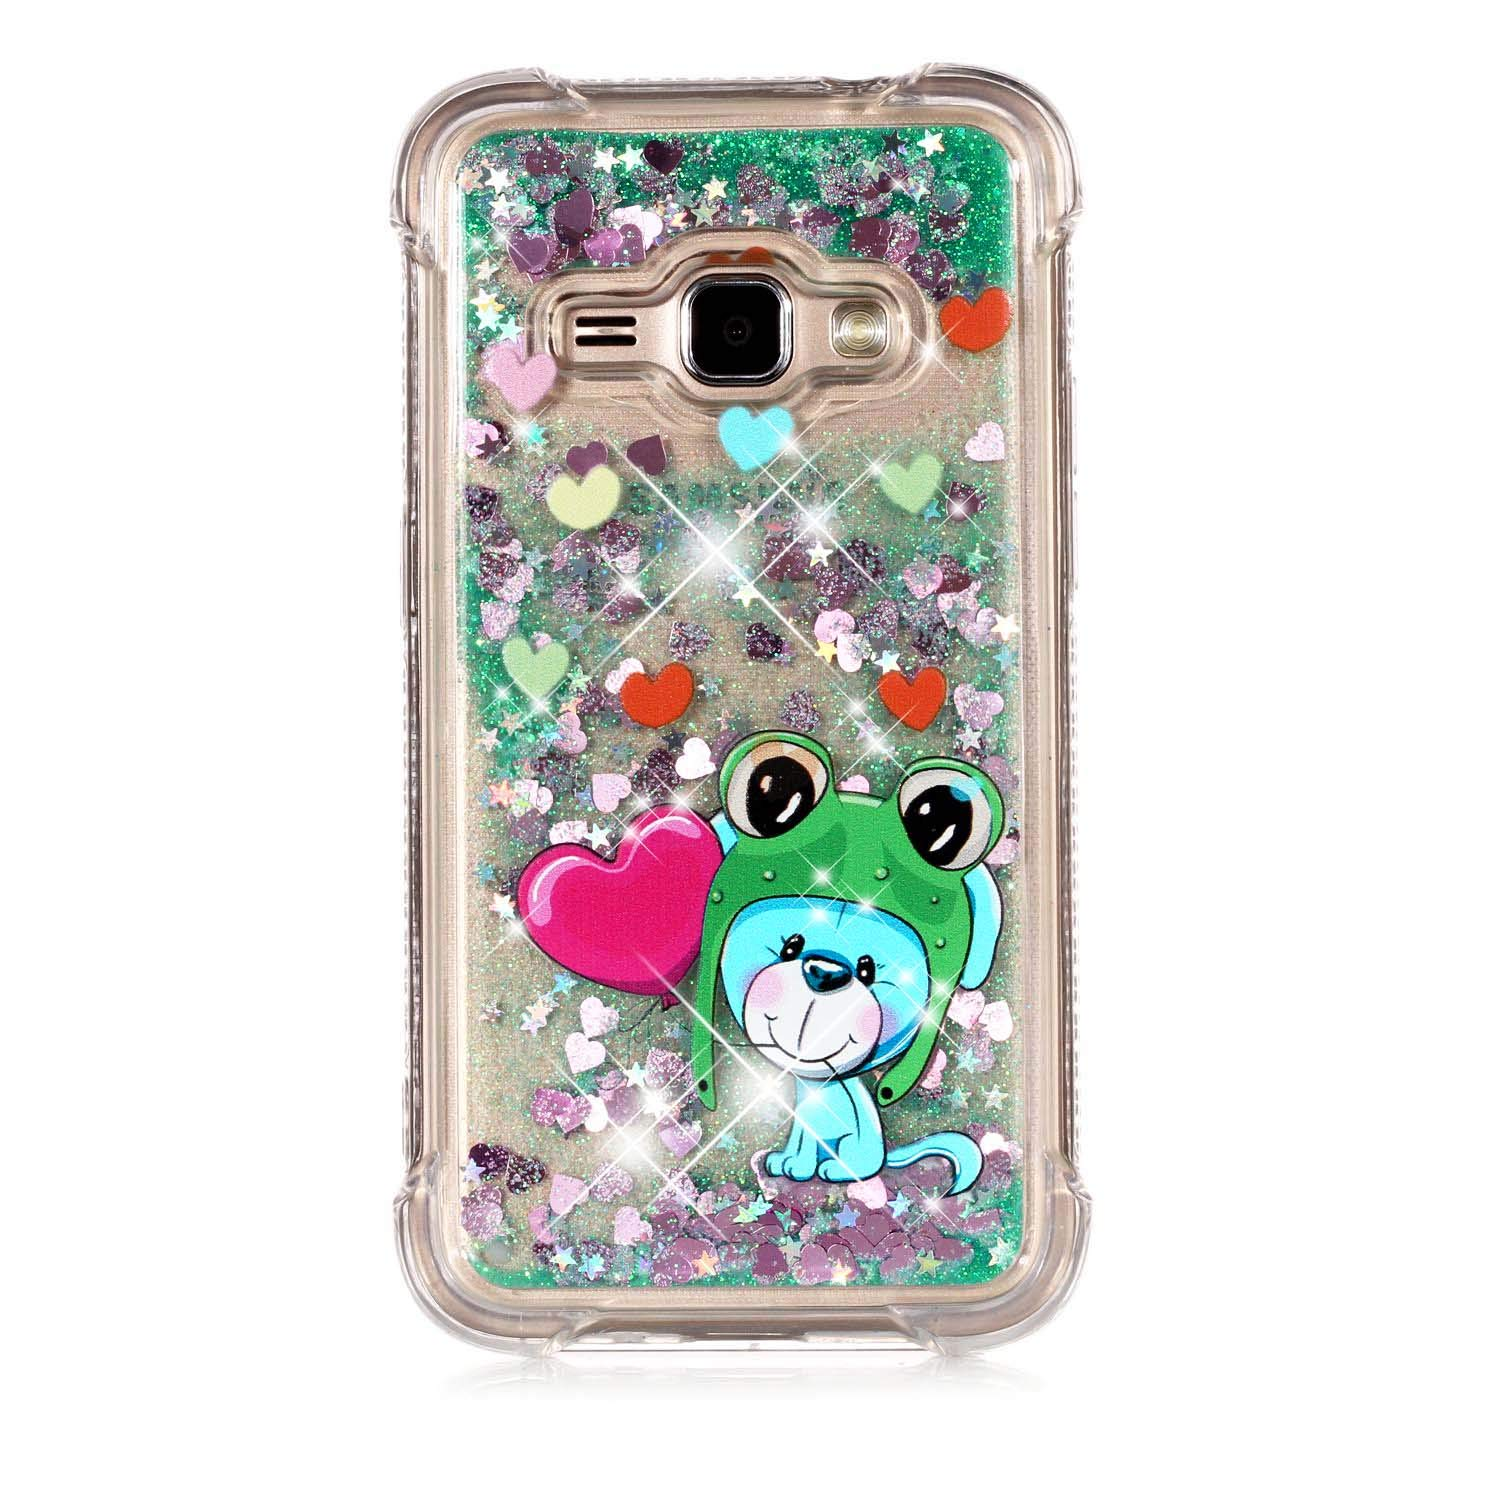 Galaxy J1 2016 Case, Eyilin 3D Creative Shockproof Transparent Glitter Bling Sparkle Dynamic Liquid Quicksand Floating Flowing Silicone Soft TPU Gel Protective Case Cover works Samsung Galaxy J1 2016 /Galaxy Amp 2 /Galaxy Express 3